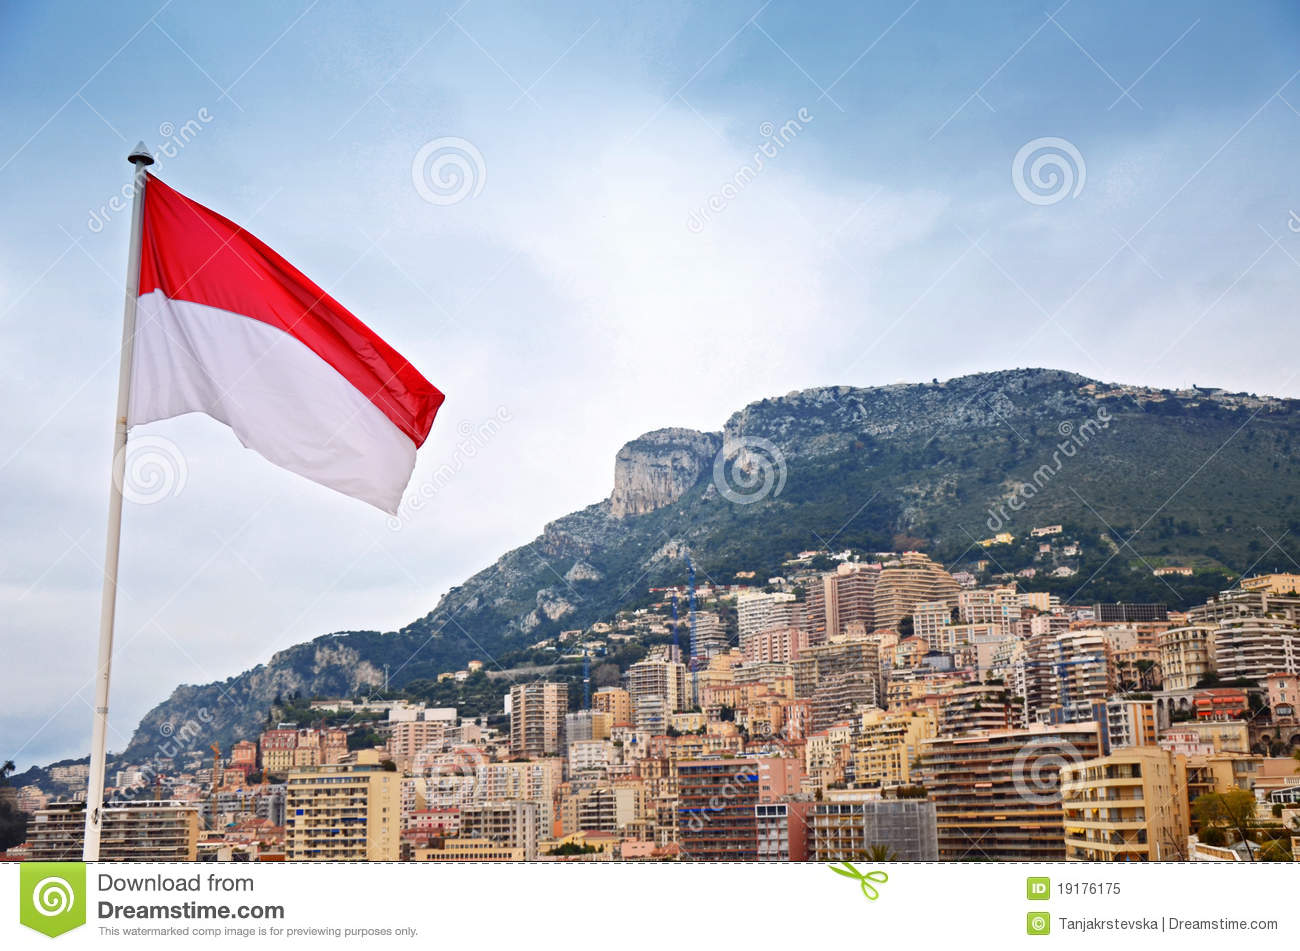 Royalty Free Stock Photo Flag Monaco City Background Image19176175 additionally LocationPhotoDirectLink G190409 D195271 I78220149 Oceanographic Museum of Monaco Monte Carlo together with 42 Photos That Prove Monaco Is One Of The Worlds Most Beautiful Places also Monaco together with Monaco prince albert ii. on oceanographic museum monte carlo